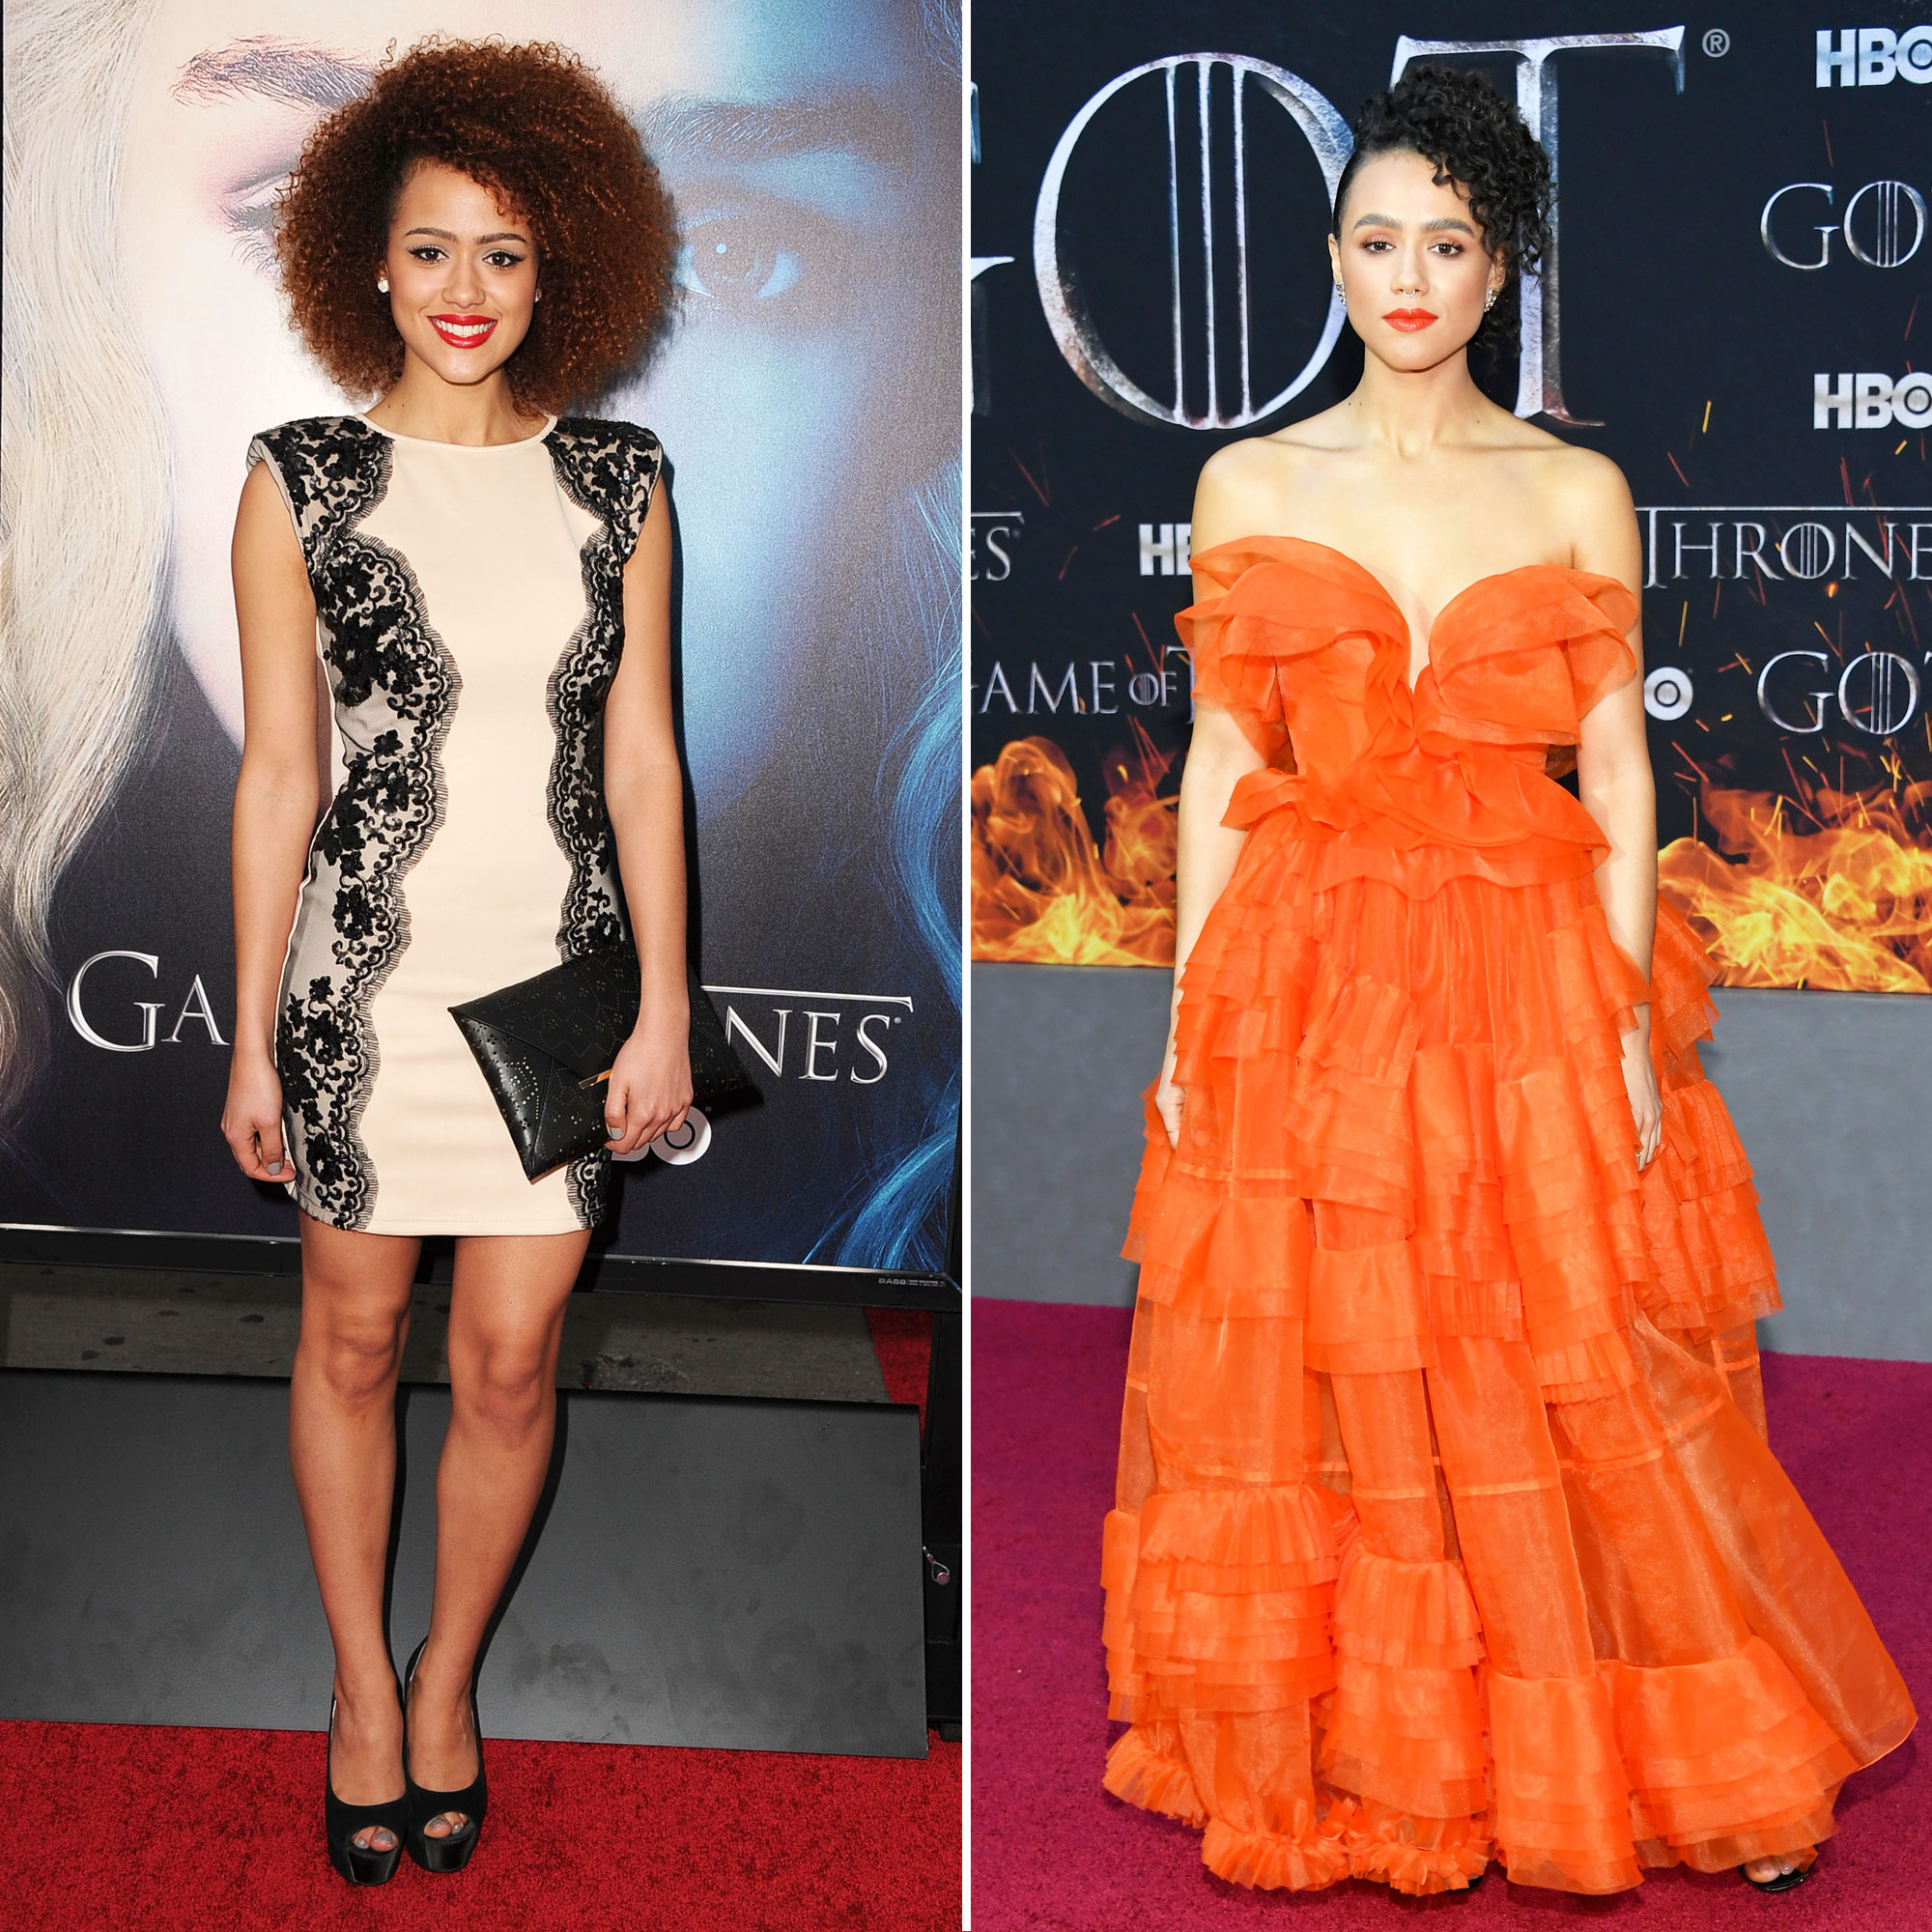 Nathalie Emmanuel 'Game of Thrones' Stars: From the First 'GoT' Red Carpet Premiere to the Last - Daenerys' righthand woman has been doing well for herself since she joined the GoT cast in 2013, appearing in the Maze Runner and the Fast and the Furious franchises in the midst of filming the HBO production. She also has two new TV series in the works: The Dark Crystal: Age of Resistance and the Four Weddings and a Funeral remake.